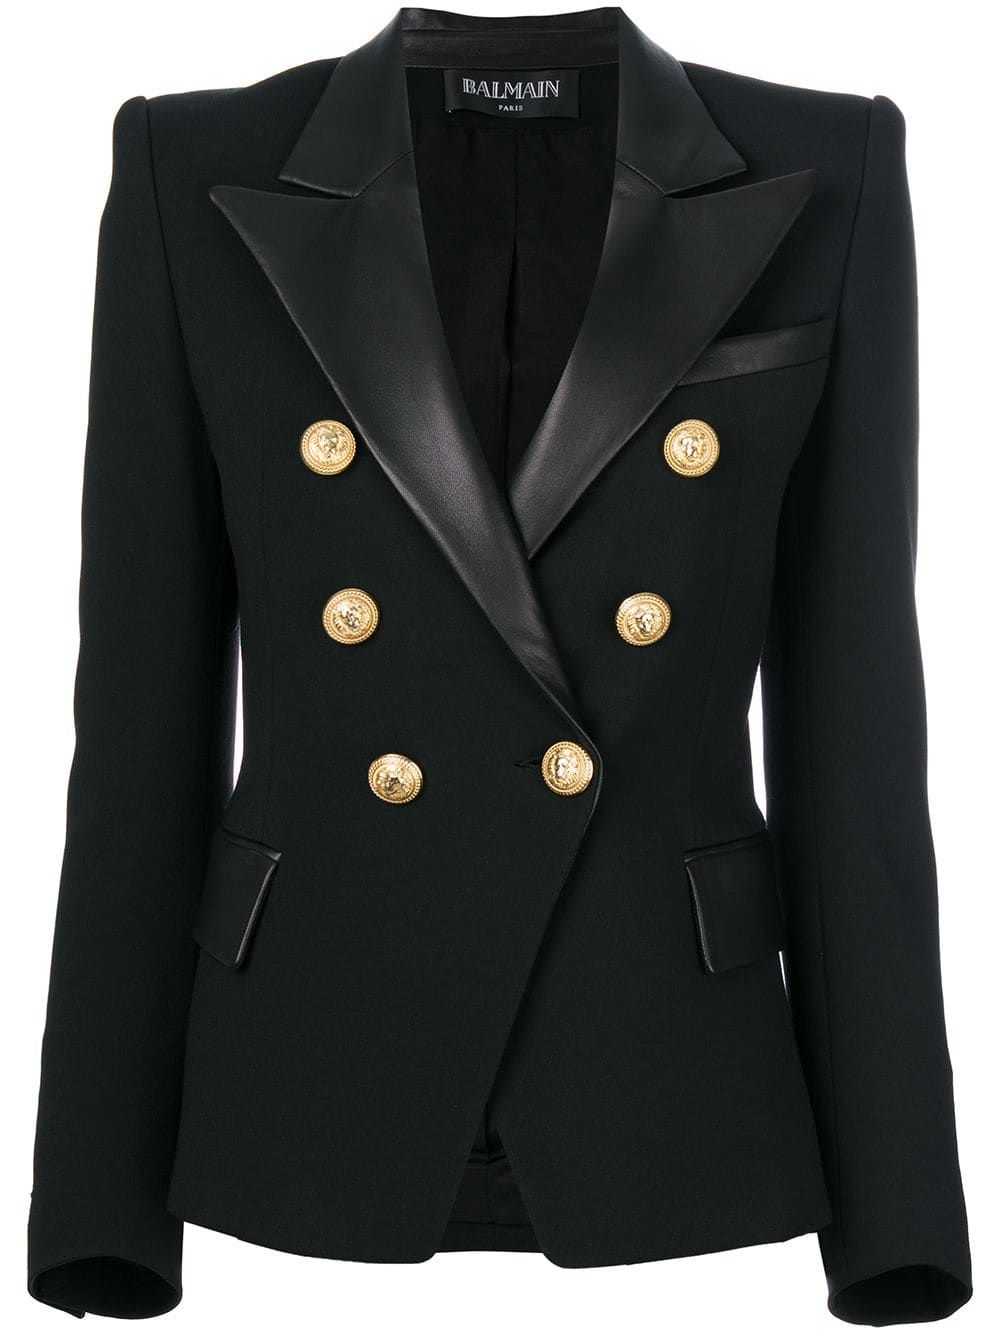 93b6408c BALMAIN Blazer. Coveting to wear with ripped jeans :). | Hats and Suits in  2019 | Balmain blazer, Balmain jacket, Fashion